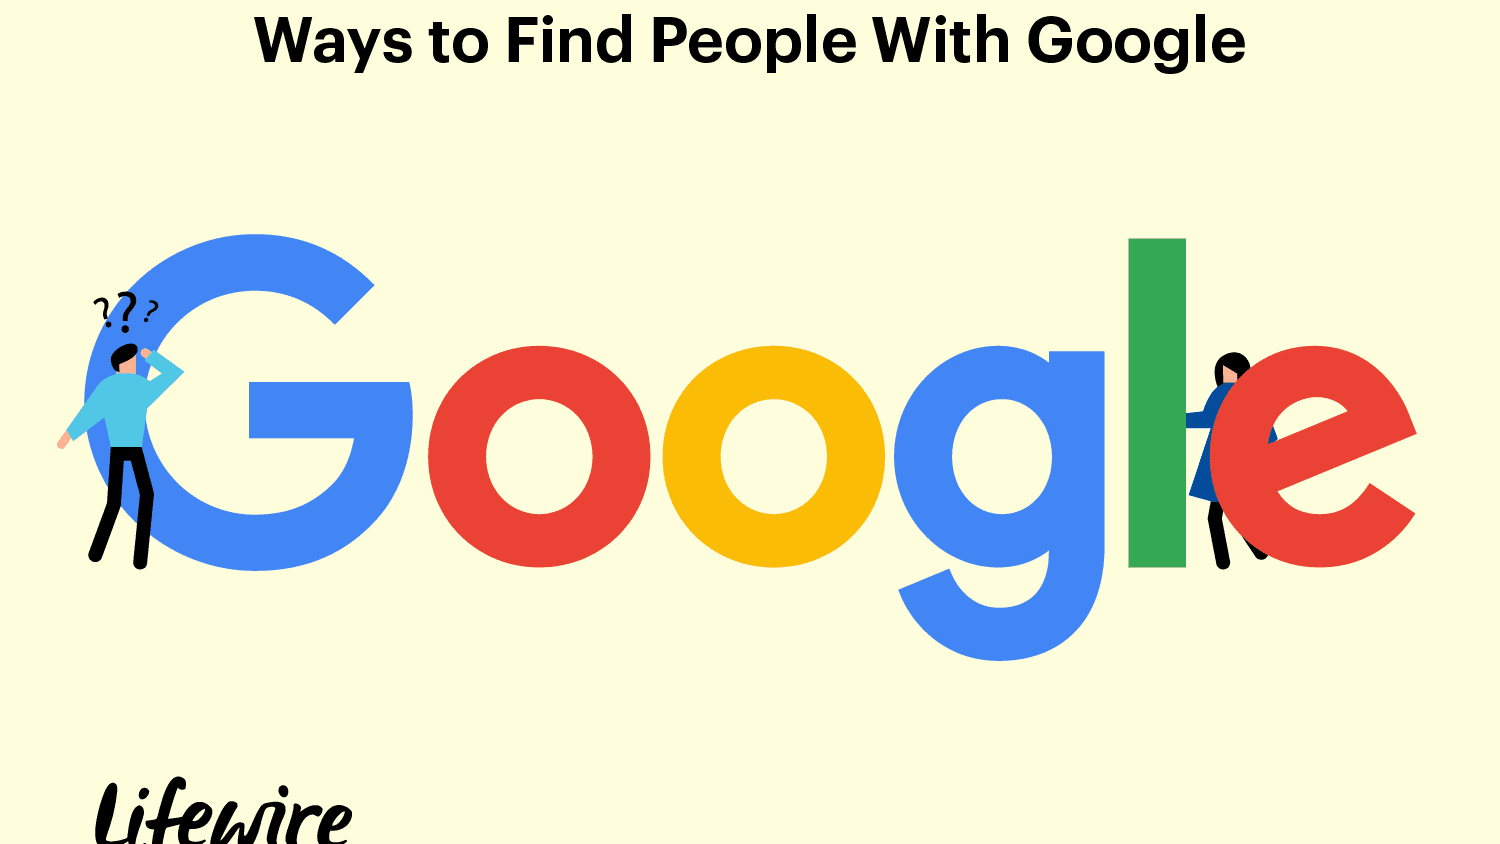 5 Tips for Finding People With Google